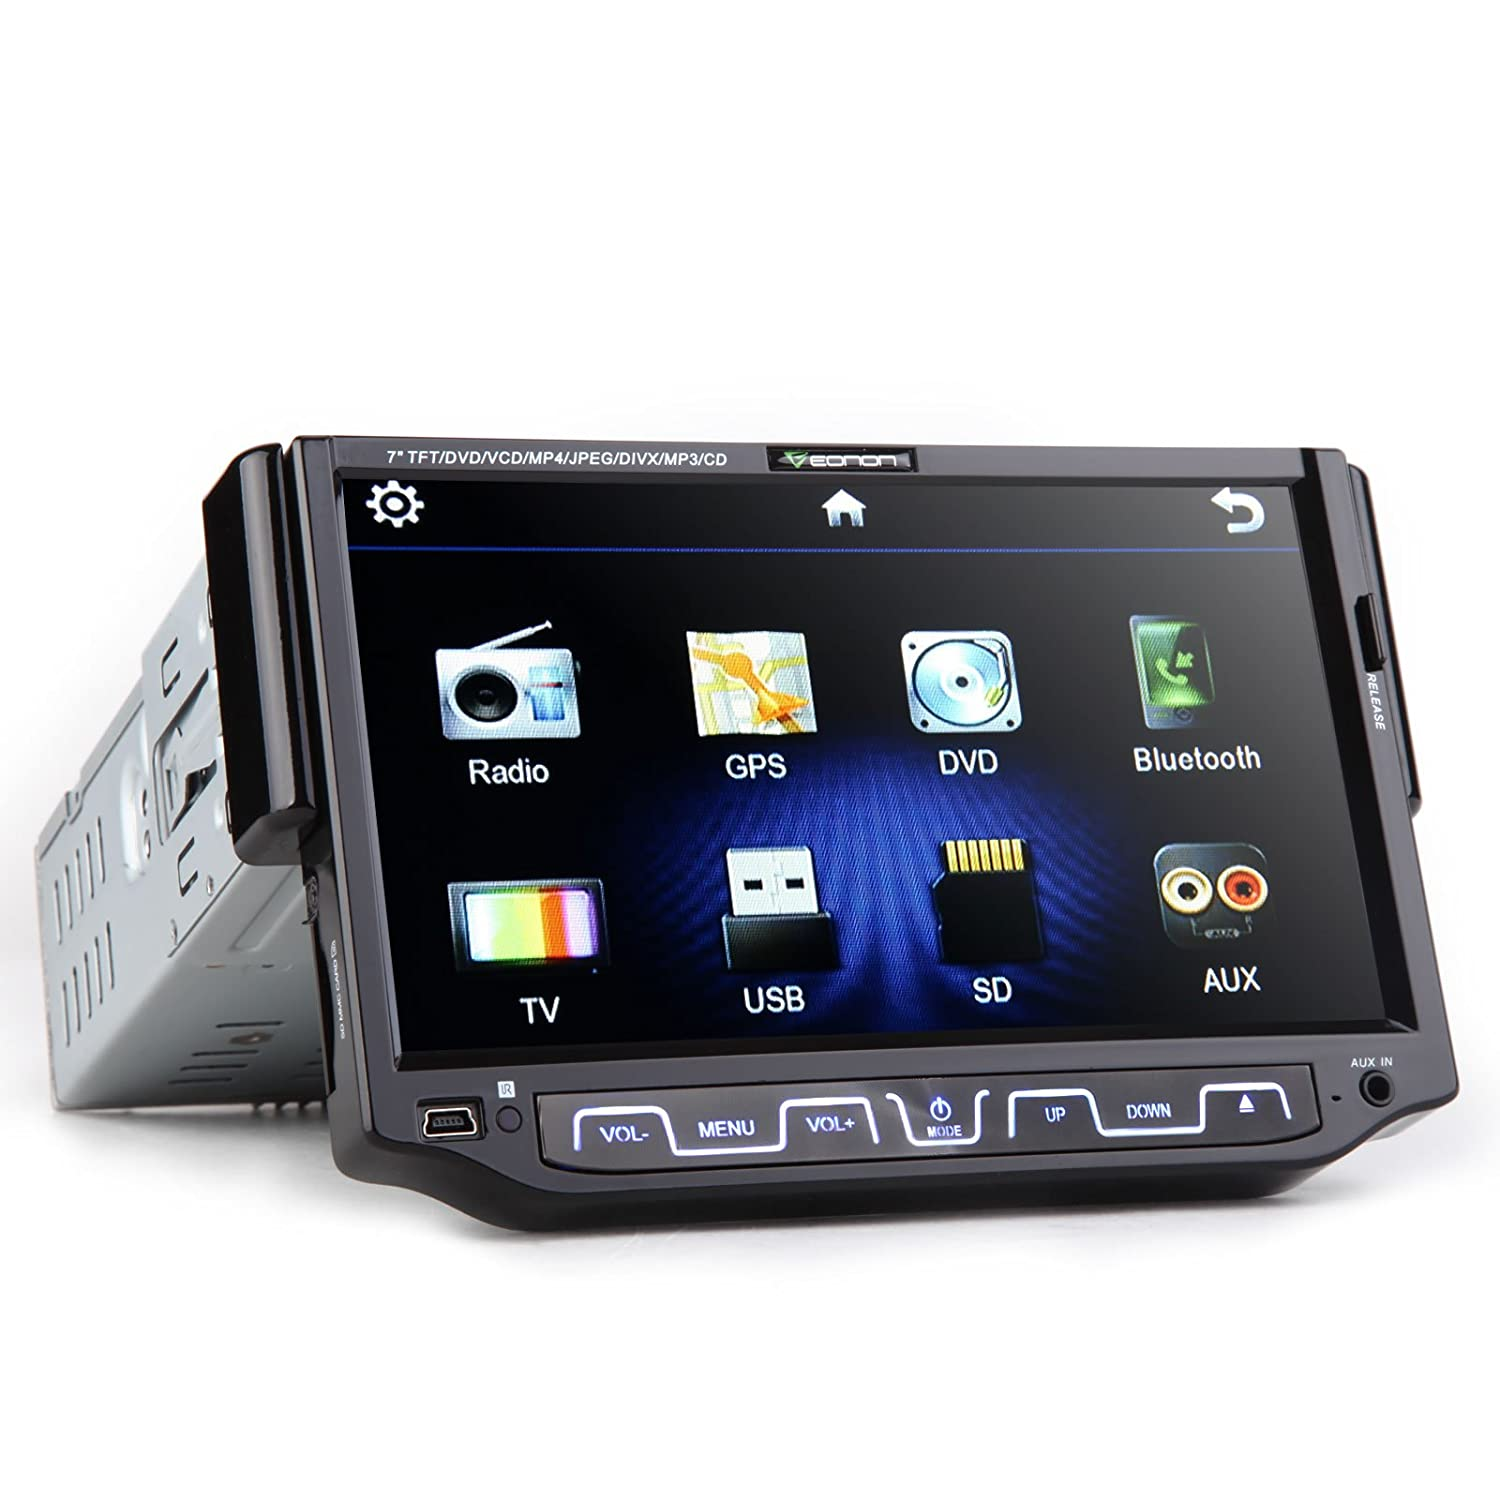 Amazon.com: Eonon 7 Inch Single DIN in Dash Car Monitor with DVD Player, Support Bluetooth, Touch Screen, Detachable Front Panel: Car Electronics